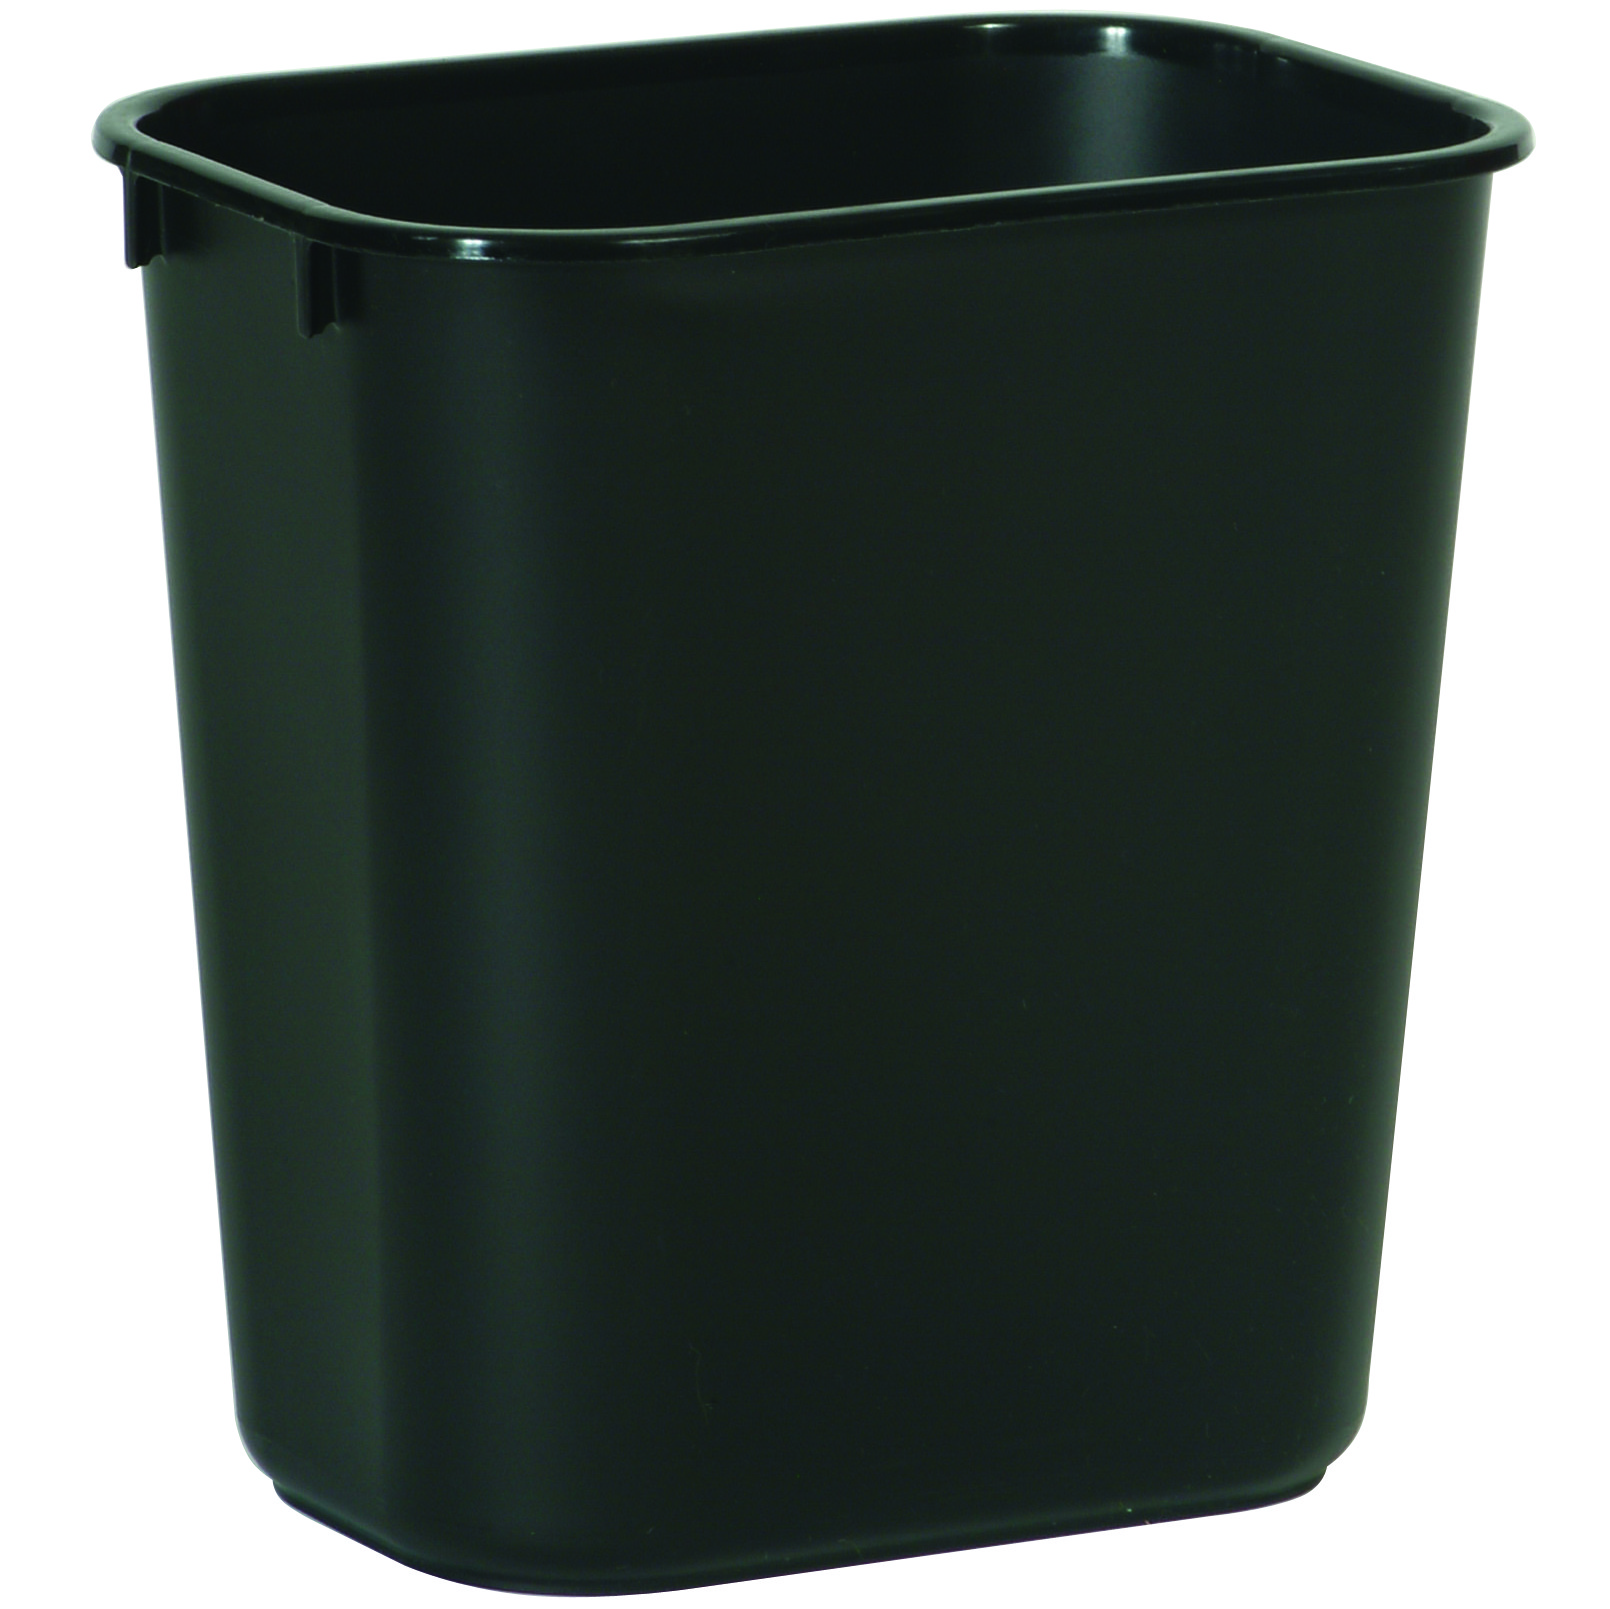 Image Result For Cardboard Garbage Cans